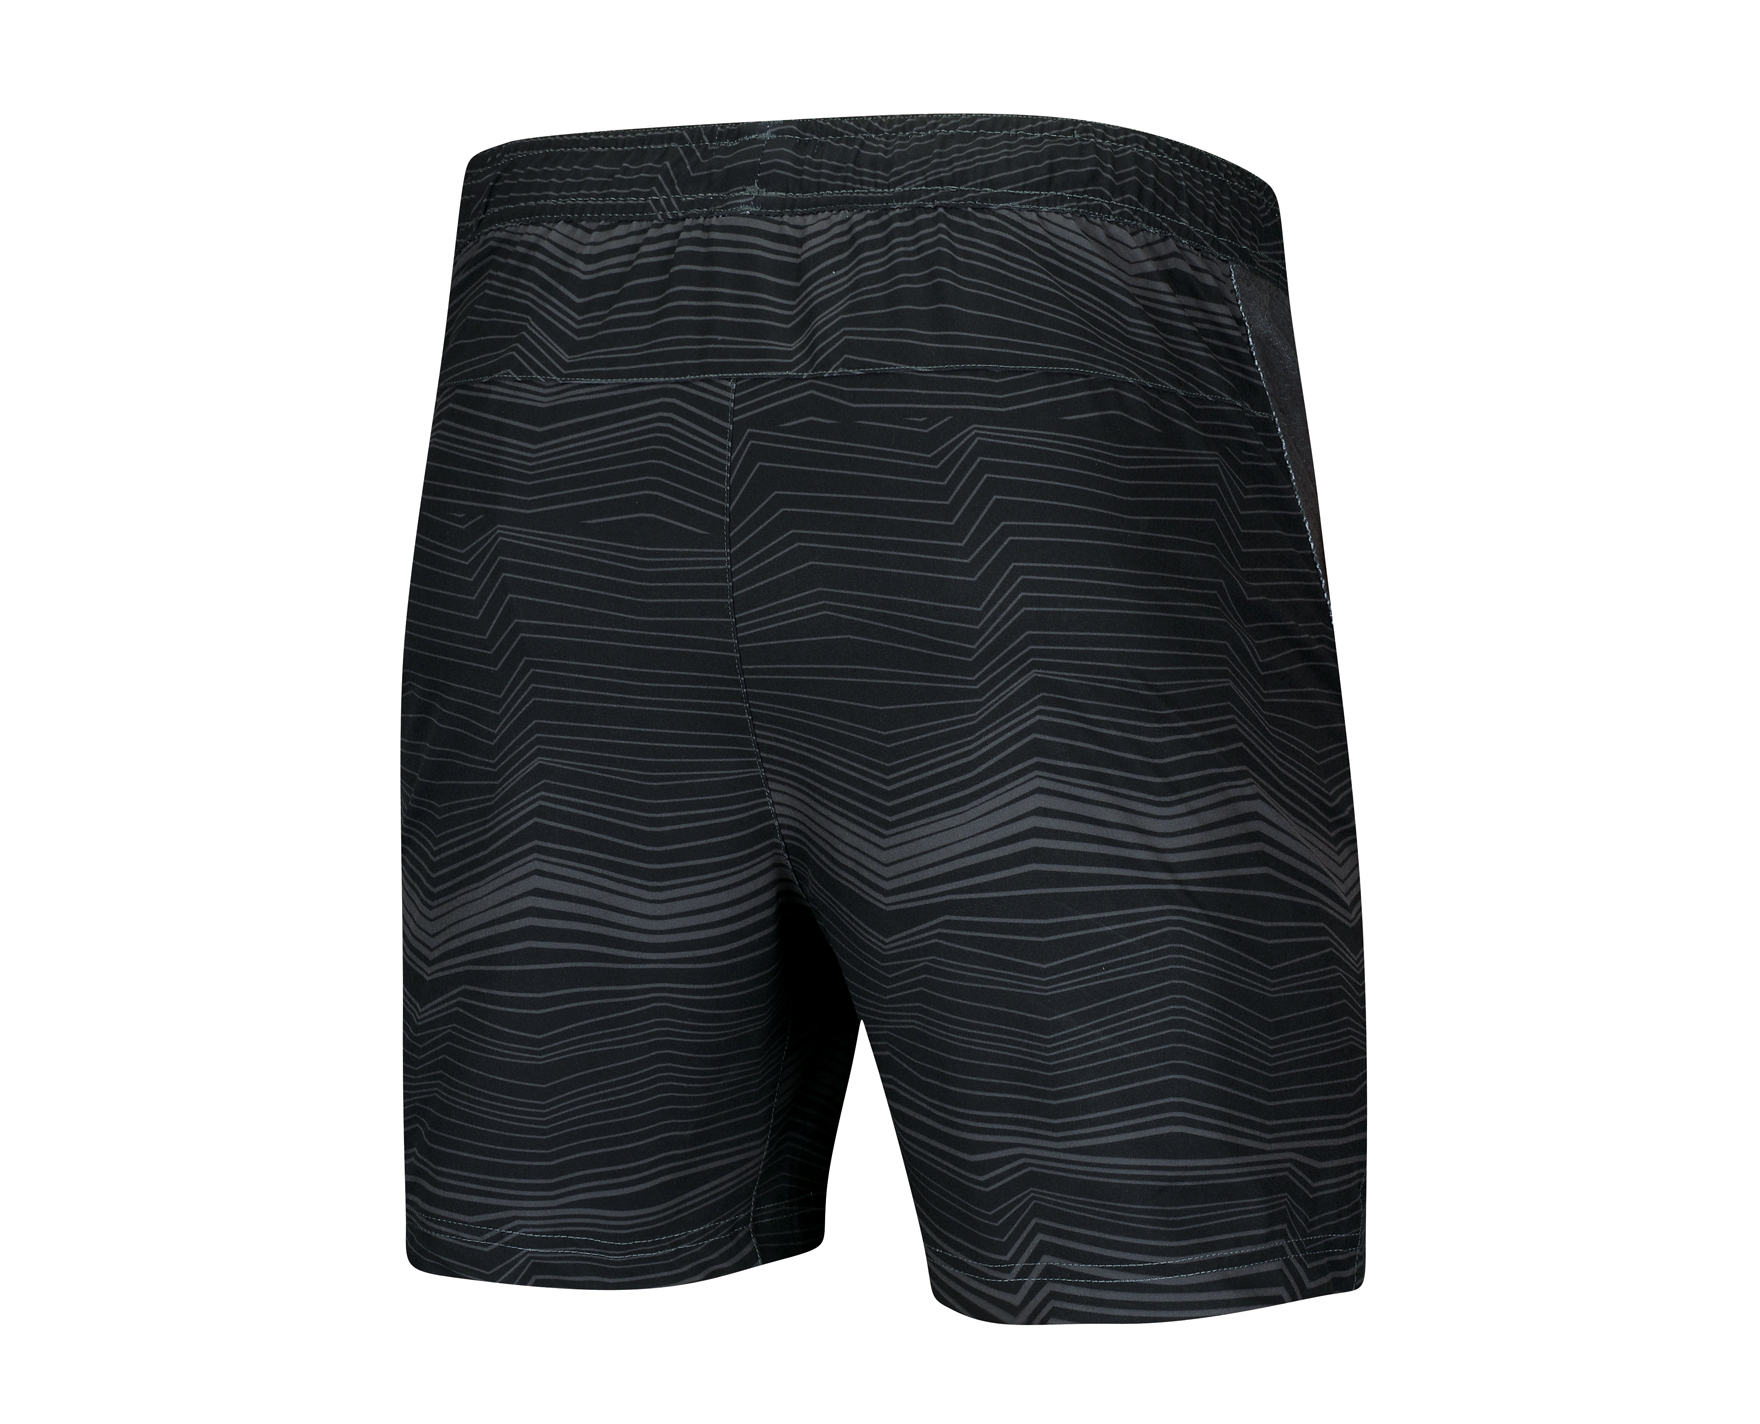 a4e29a28 Li-Ning® | Men's Table Tennis Shorts | Shorts AAPM151-2